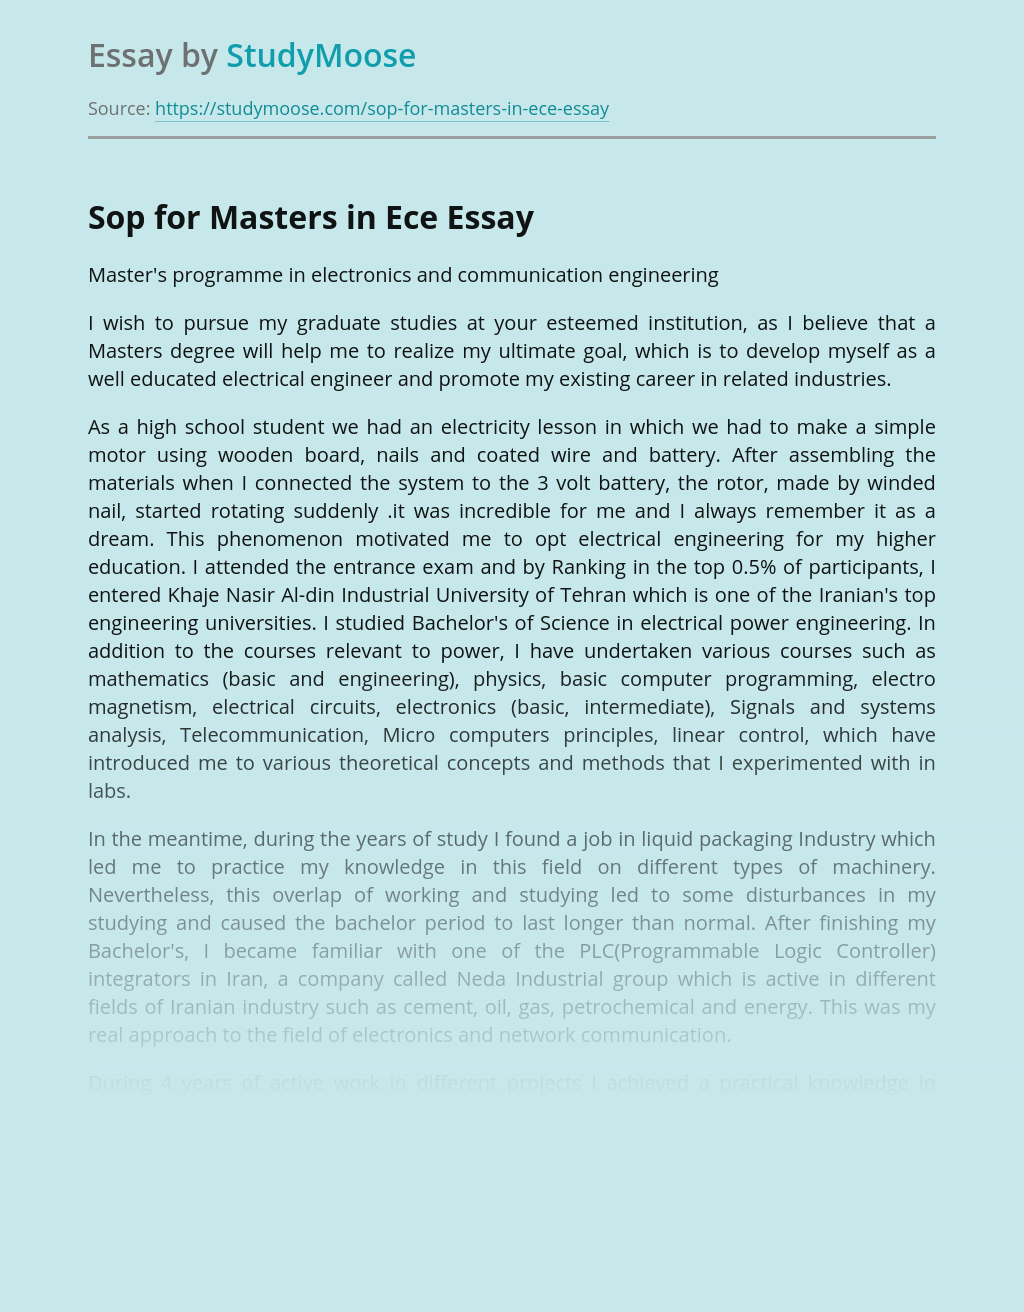 Sop for Masters in Ece